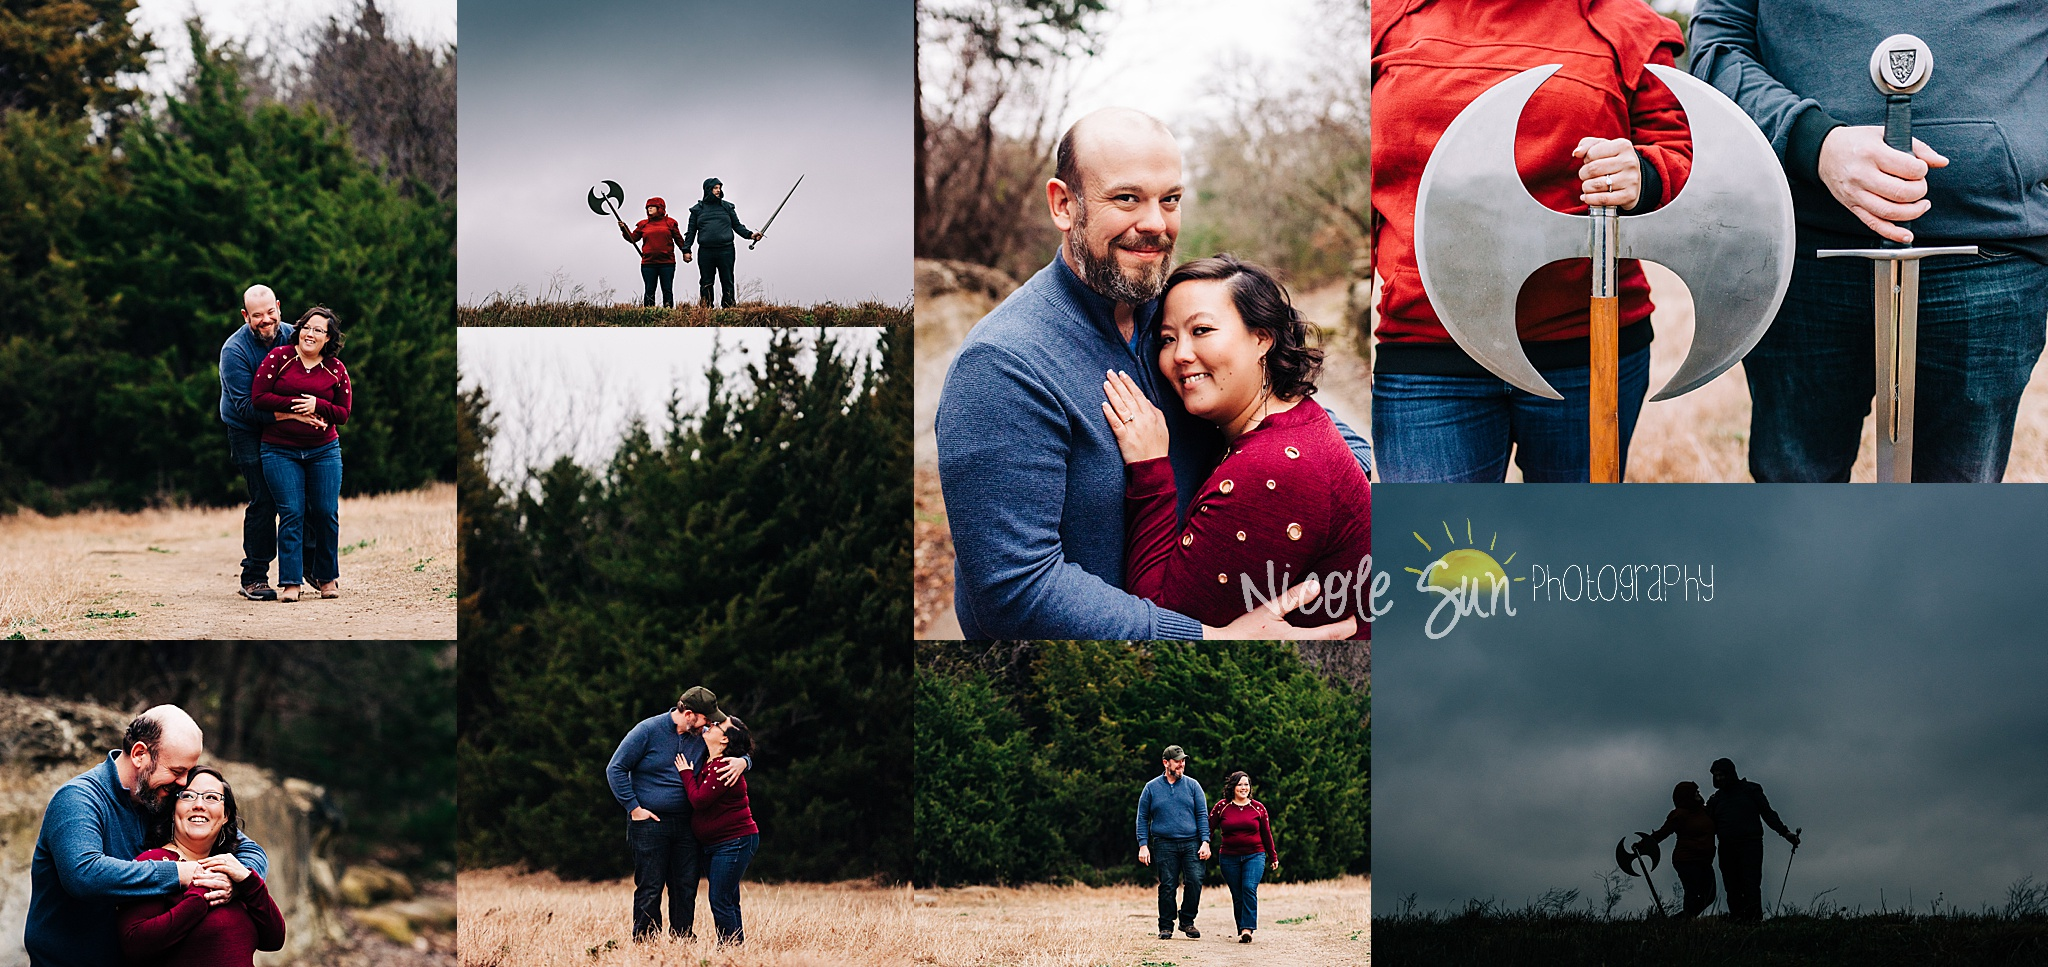 Engagement Session - Plano, Texas